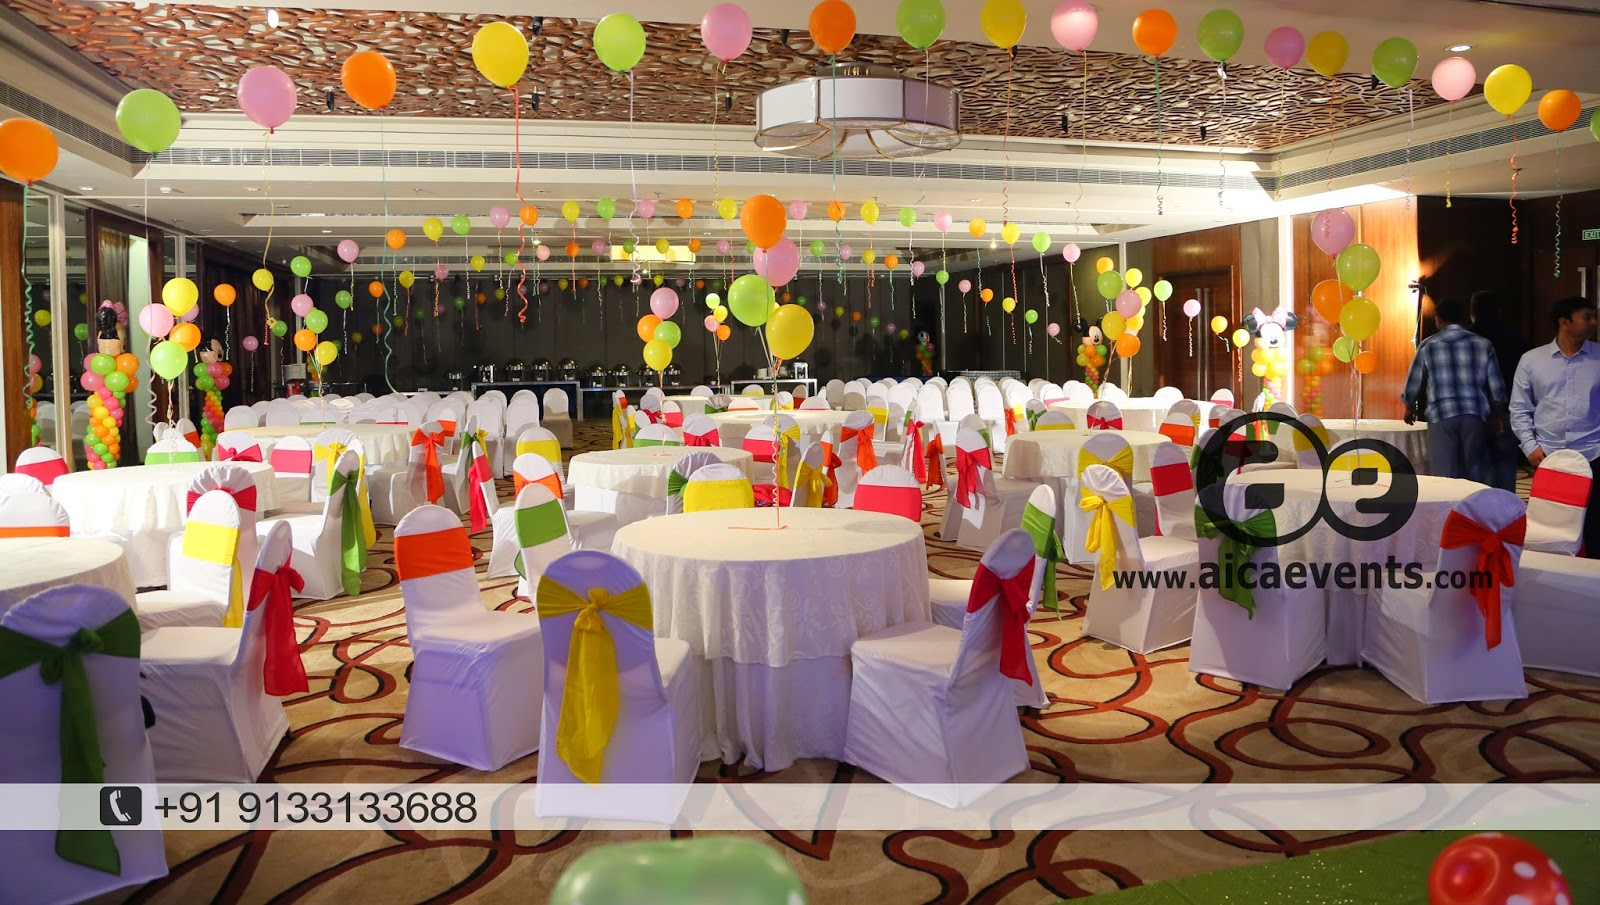 Aicaevents balloon wall stage backdrop decoration for Backdrop decoration for birthday